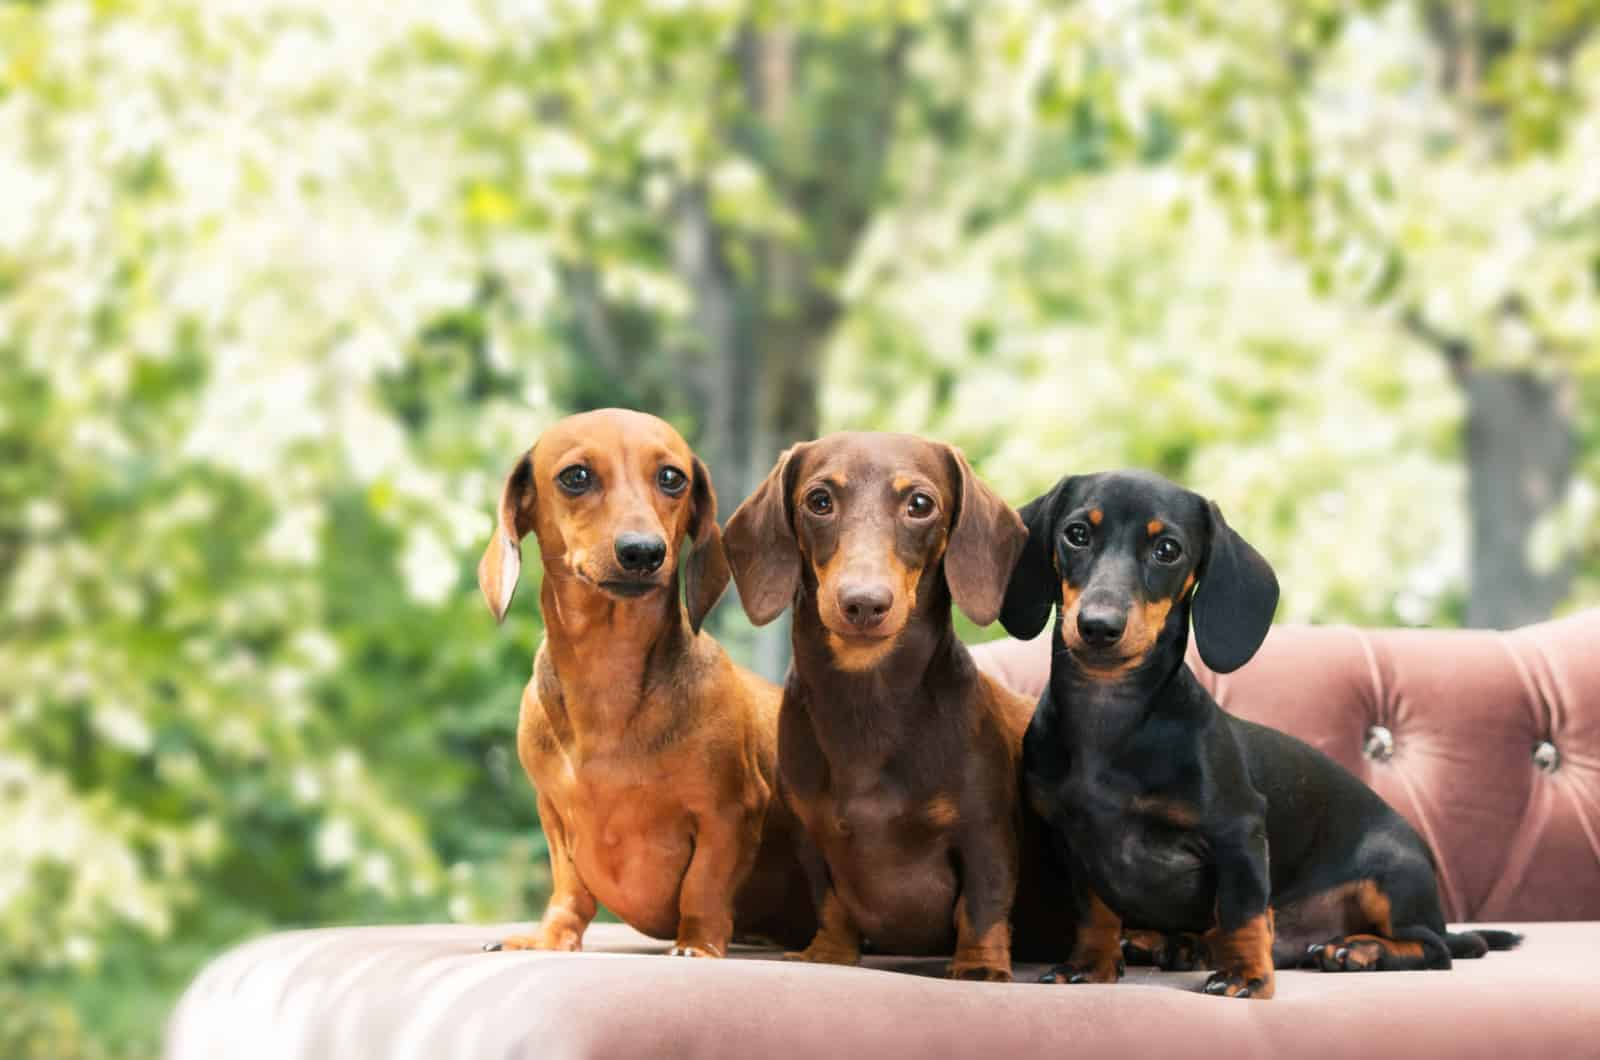 three dachshunds sitting on a bed